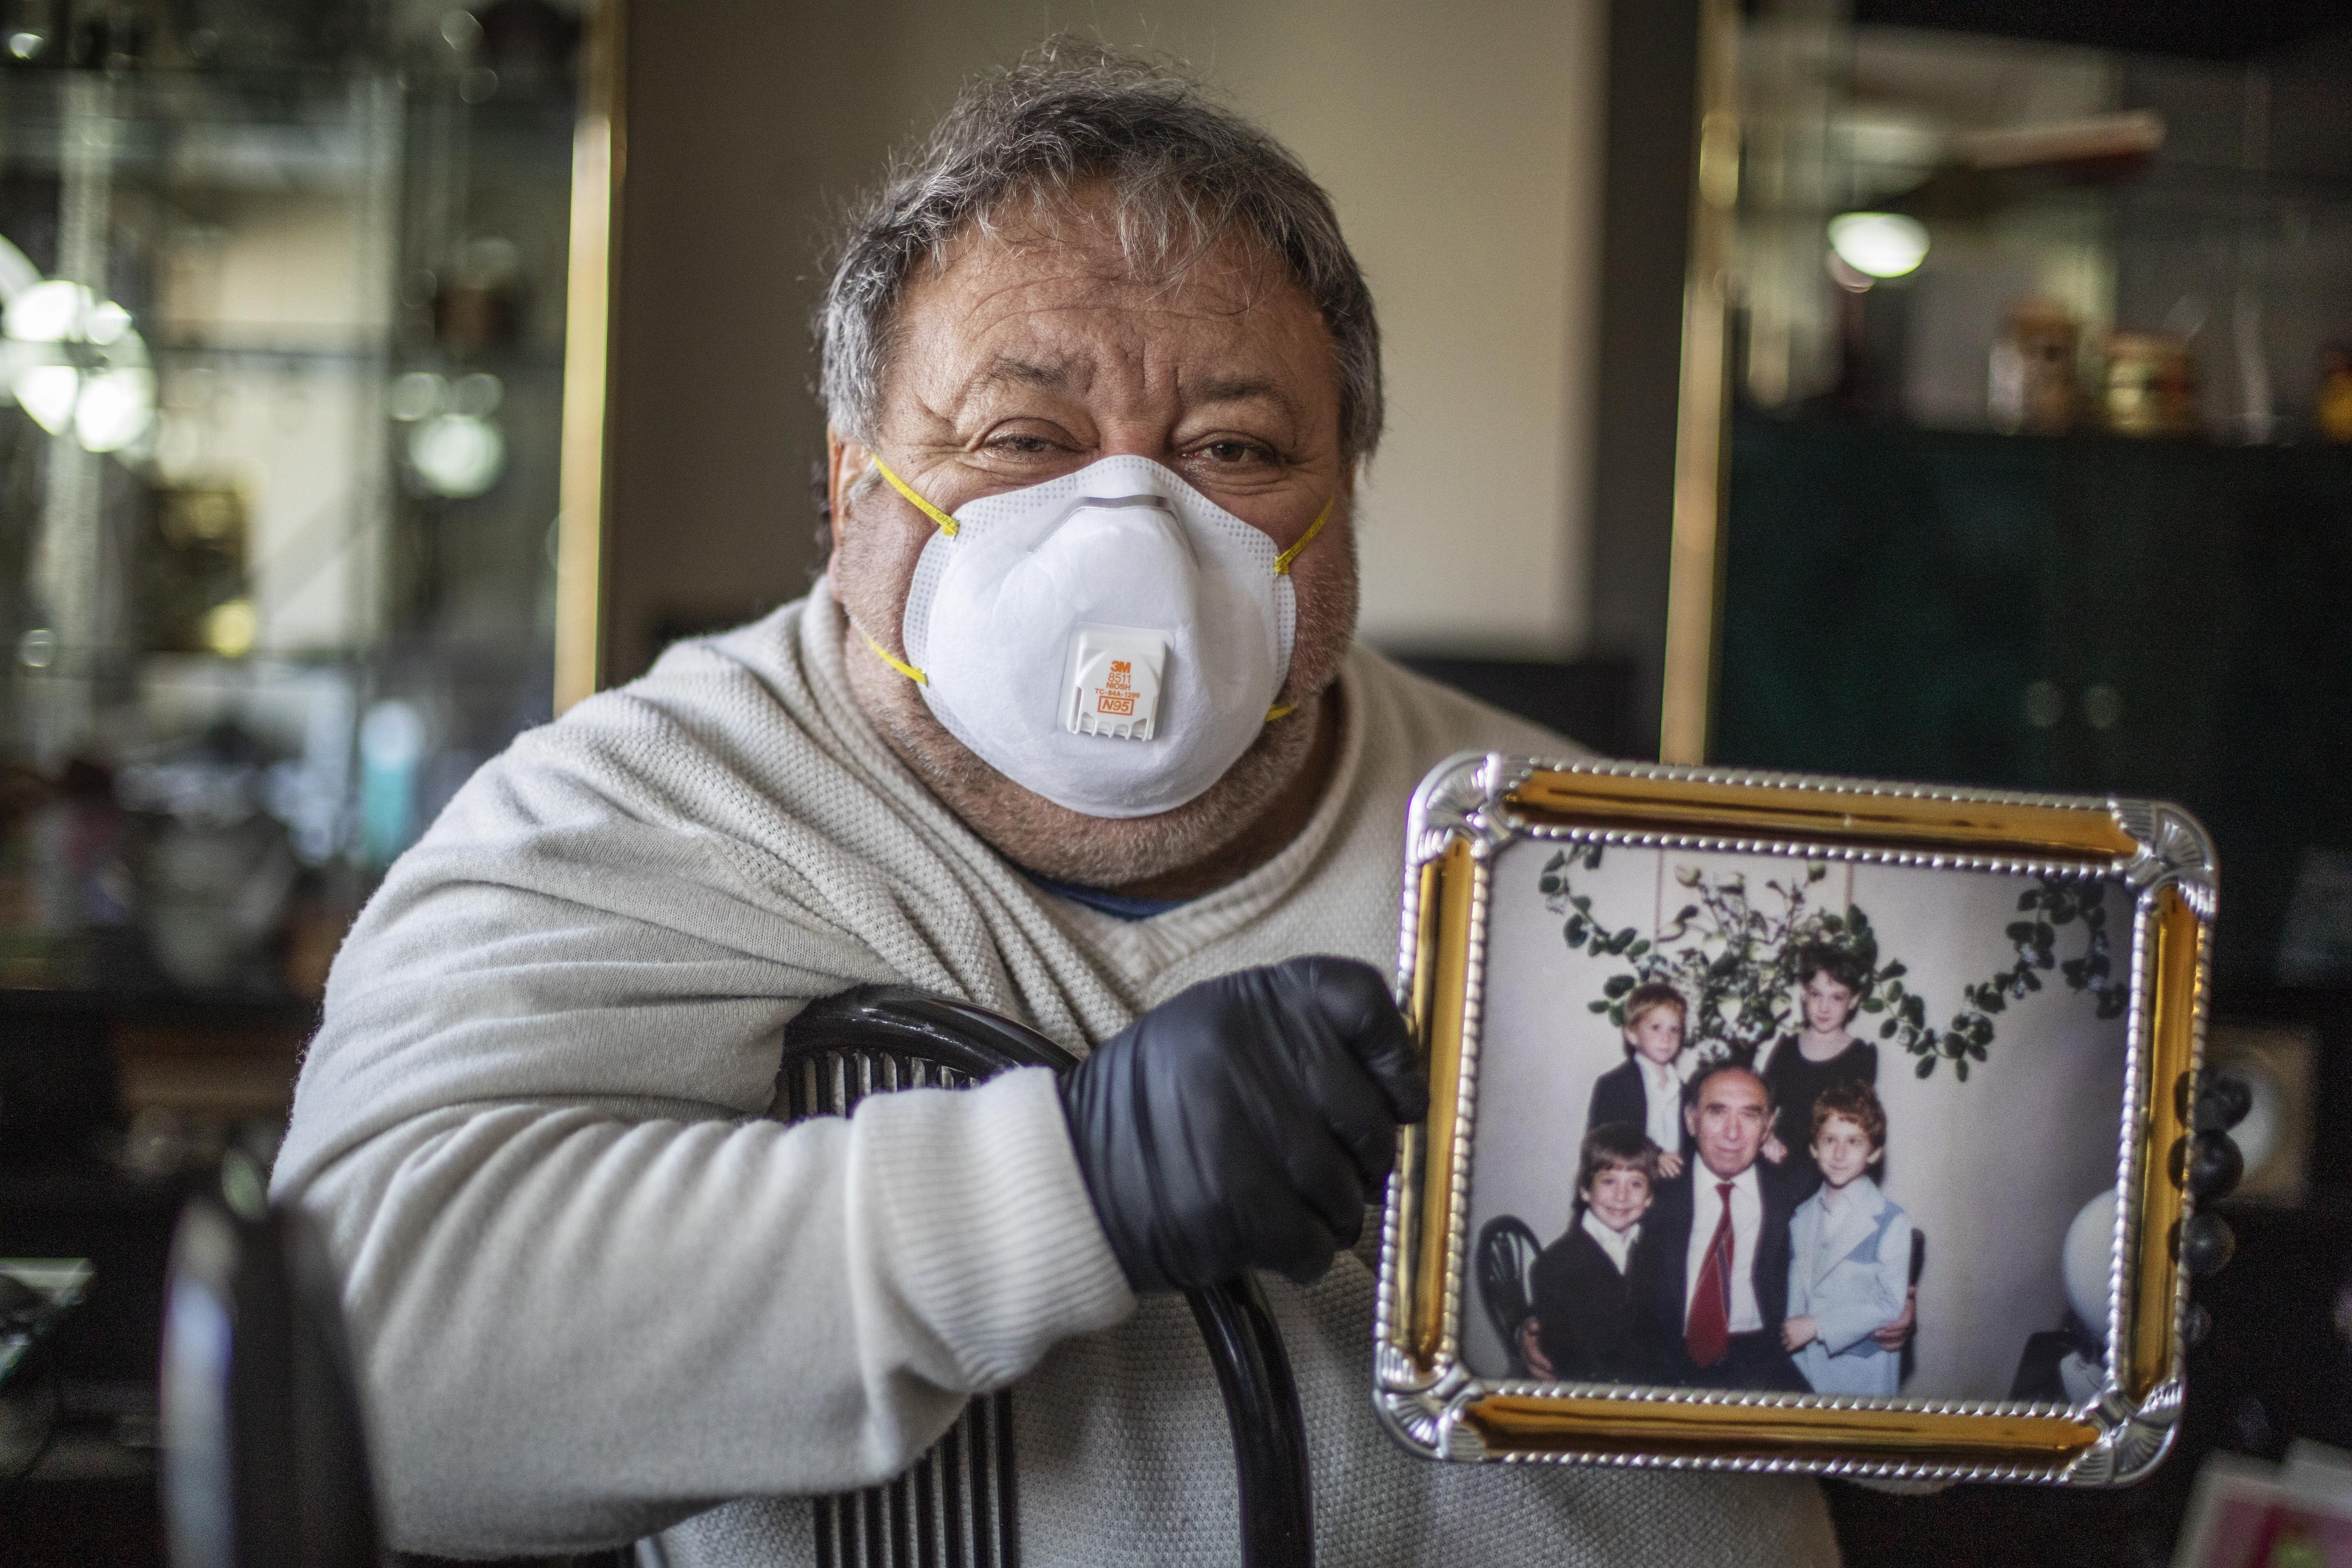 """Michael Tokar holds a picture of his father, David Tokar, as he cleans out his apartment after he died from complications caused by coronavirus, in the Brooklyn borough of New York, Sunday, April 12, 2020. """"He was born 92 years ago,"""" said Tokar, reciting a collection of facts that form a portrait. """"He collected stamps. He loved the racetrack. He adored his grandchildren."""" (AP Photo/David Goldman)"""